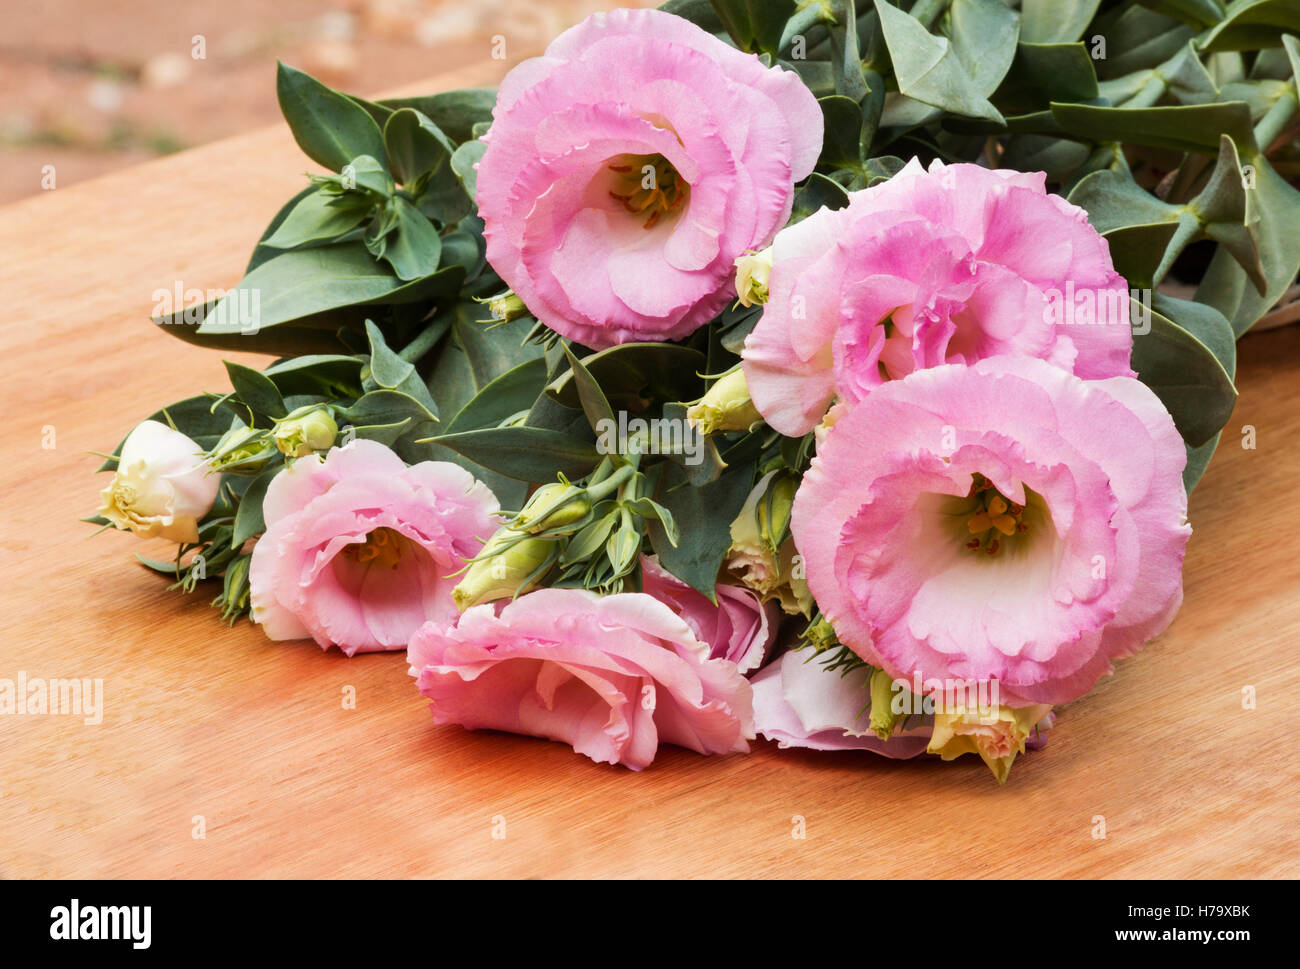 Pink lisianthus plant in flower on a wooden table stock photo pink lisianthus plant in flower on a wooden table mightylinksfo